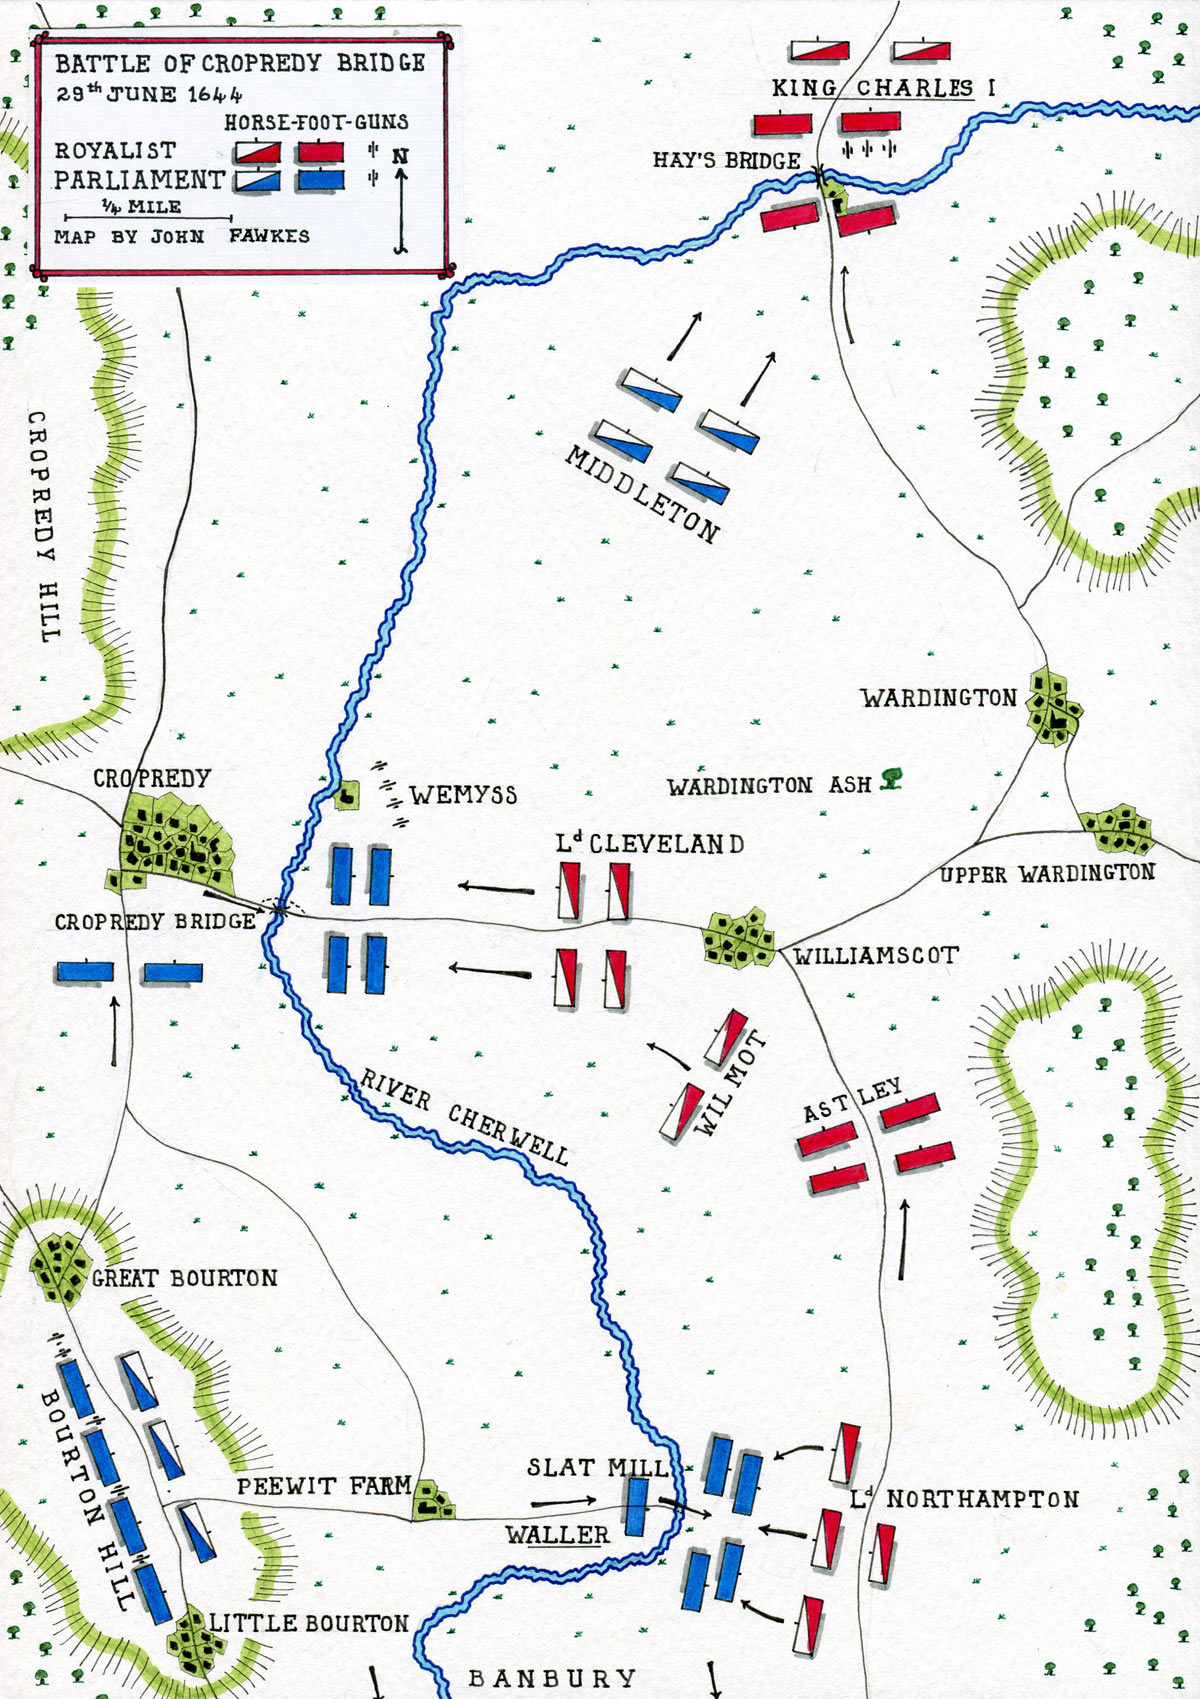 Map of the Battle of Cropredy Bridge on 29th June 1644 in the English Civil War: map by John Fawkes